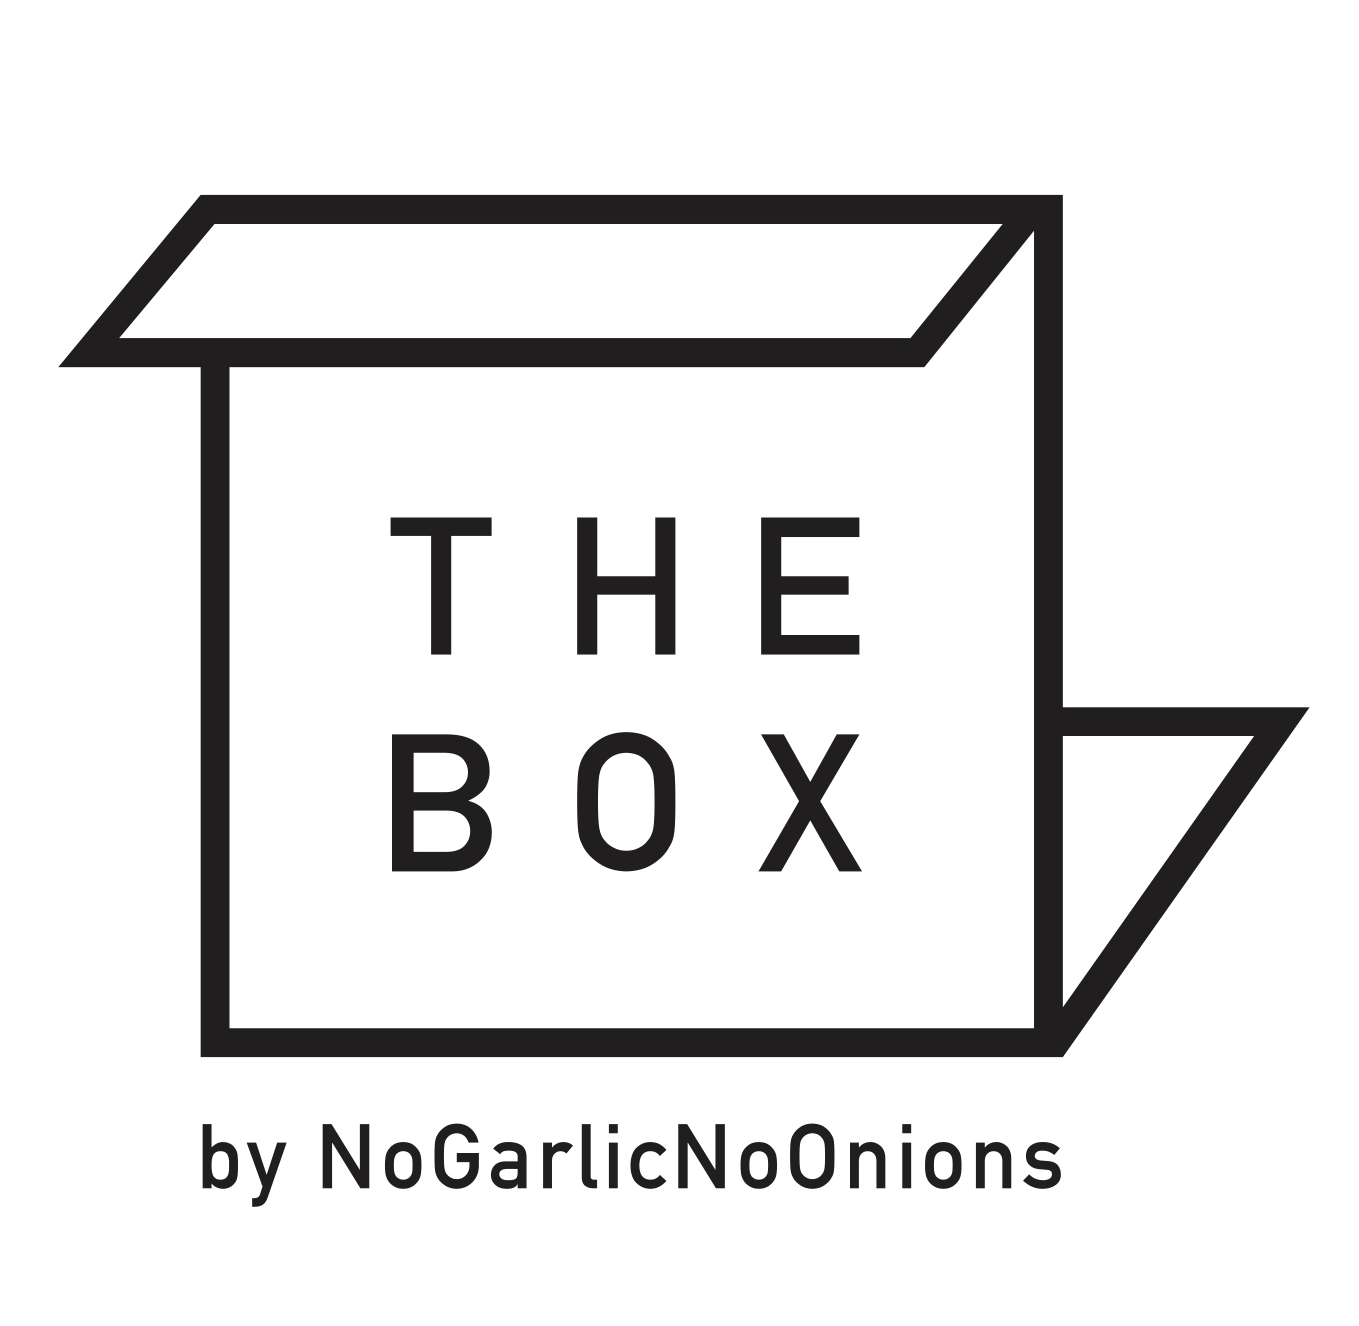 LOGO-THE-BOX